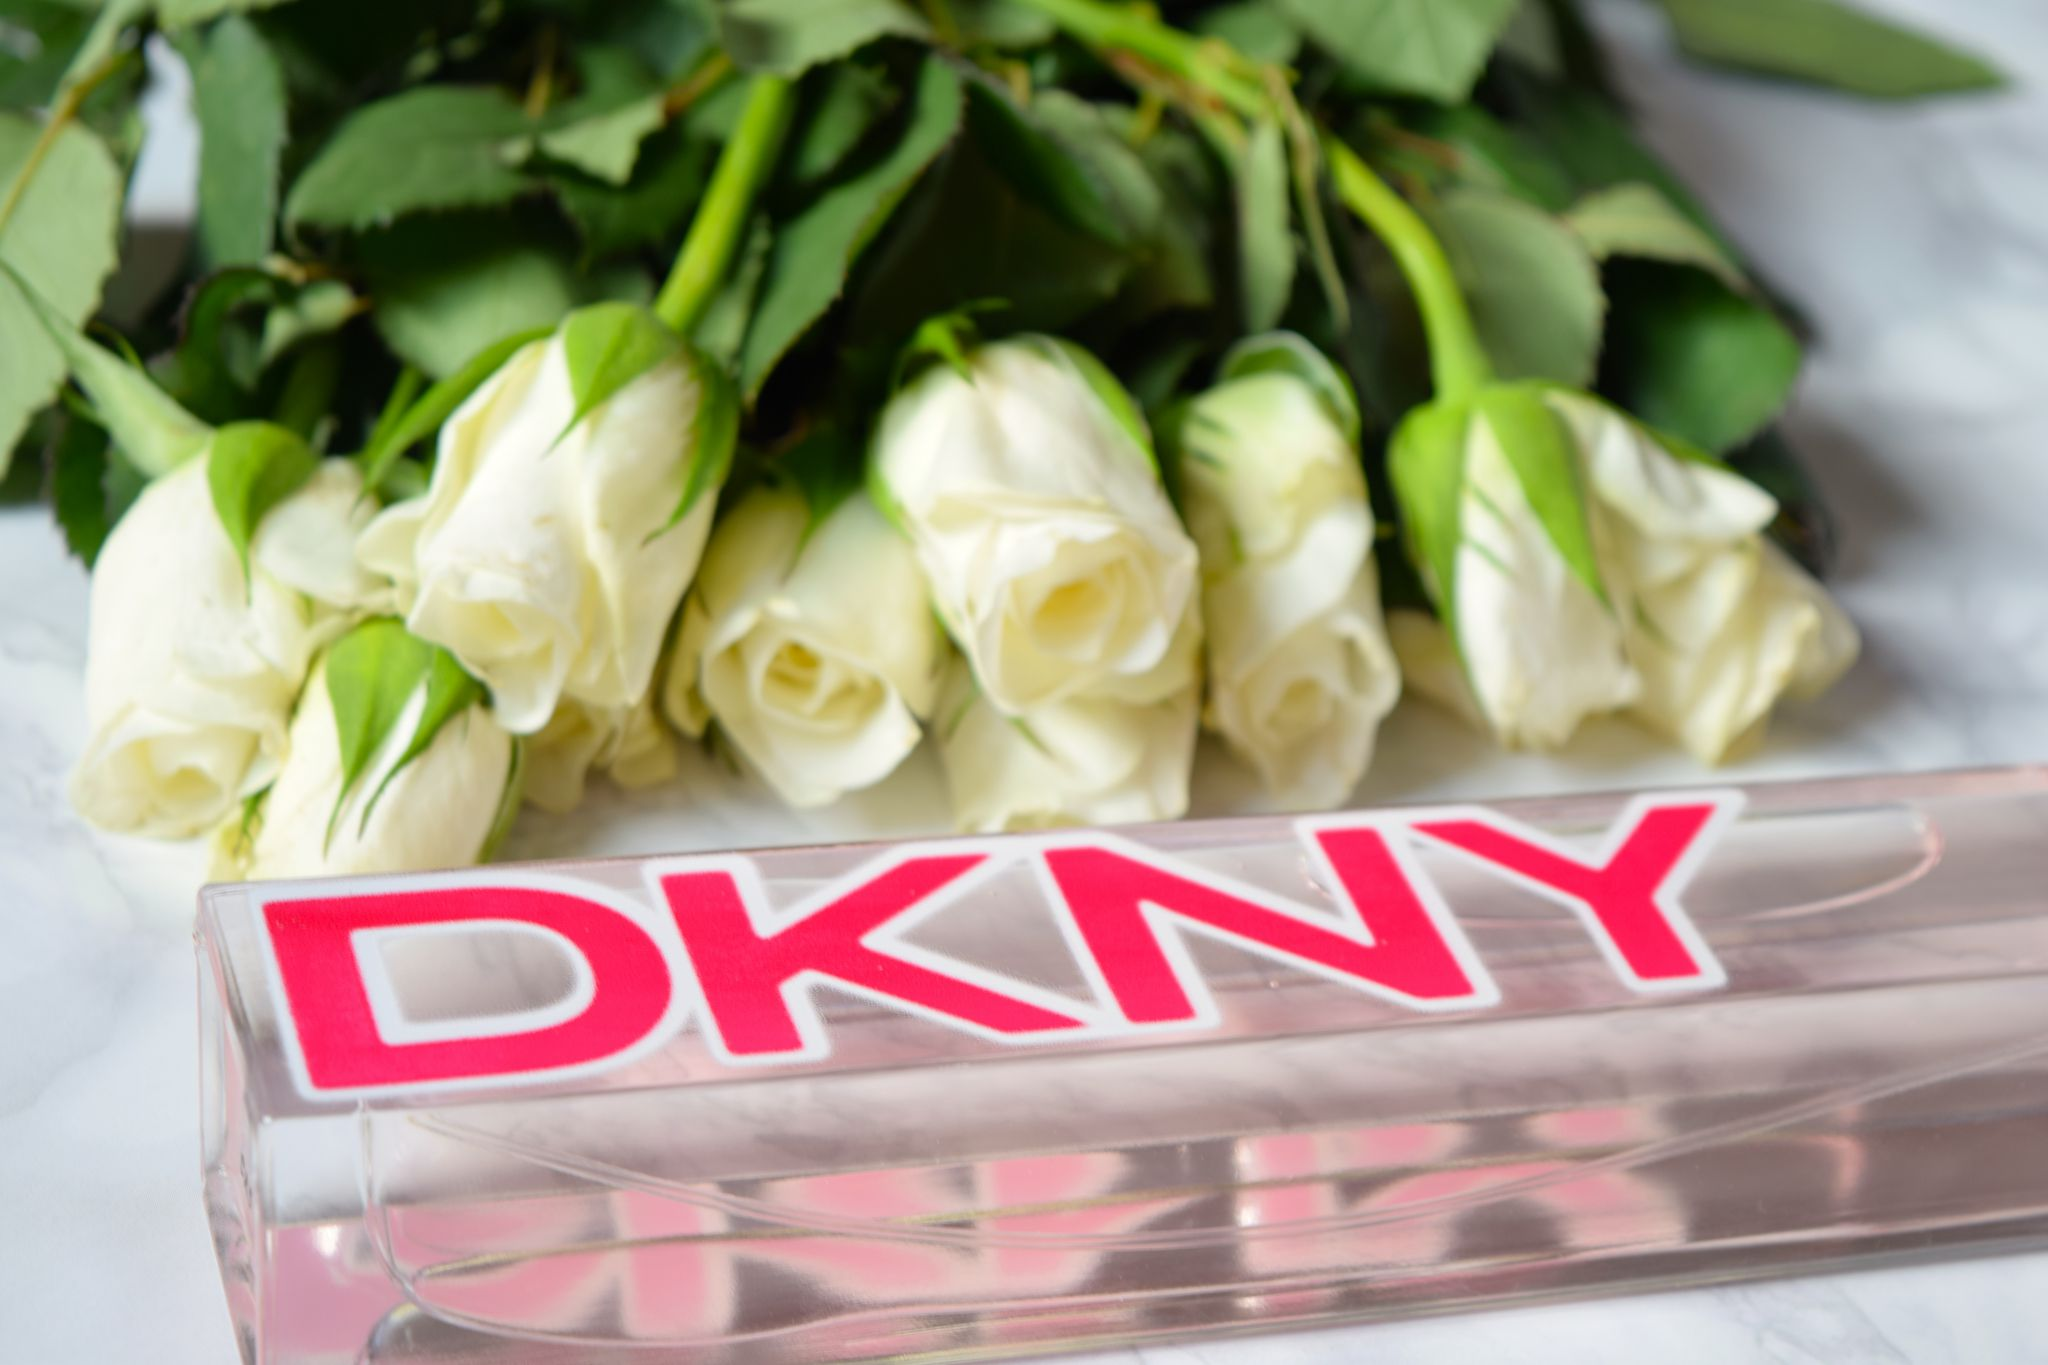 DKNY Women Limited Edition 3